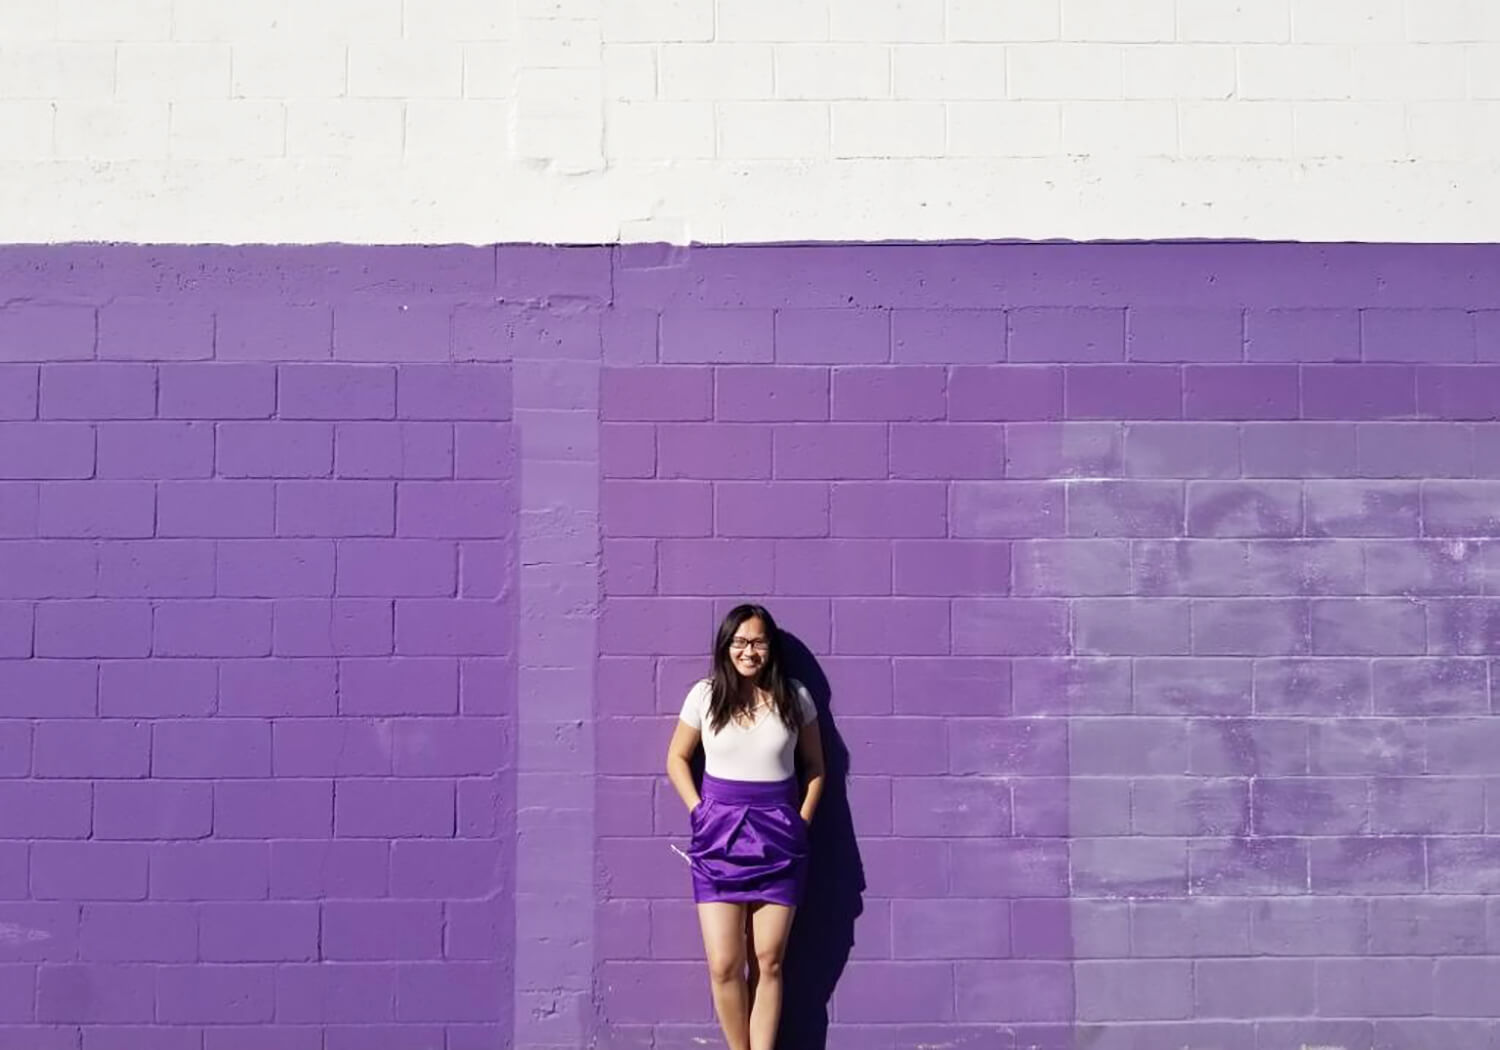 Instagrammable Walls of Calgary - Purple Wall